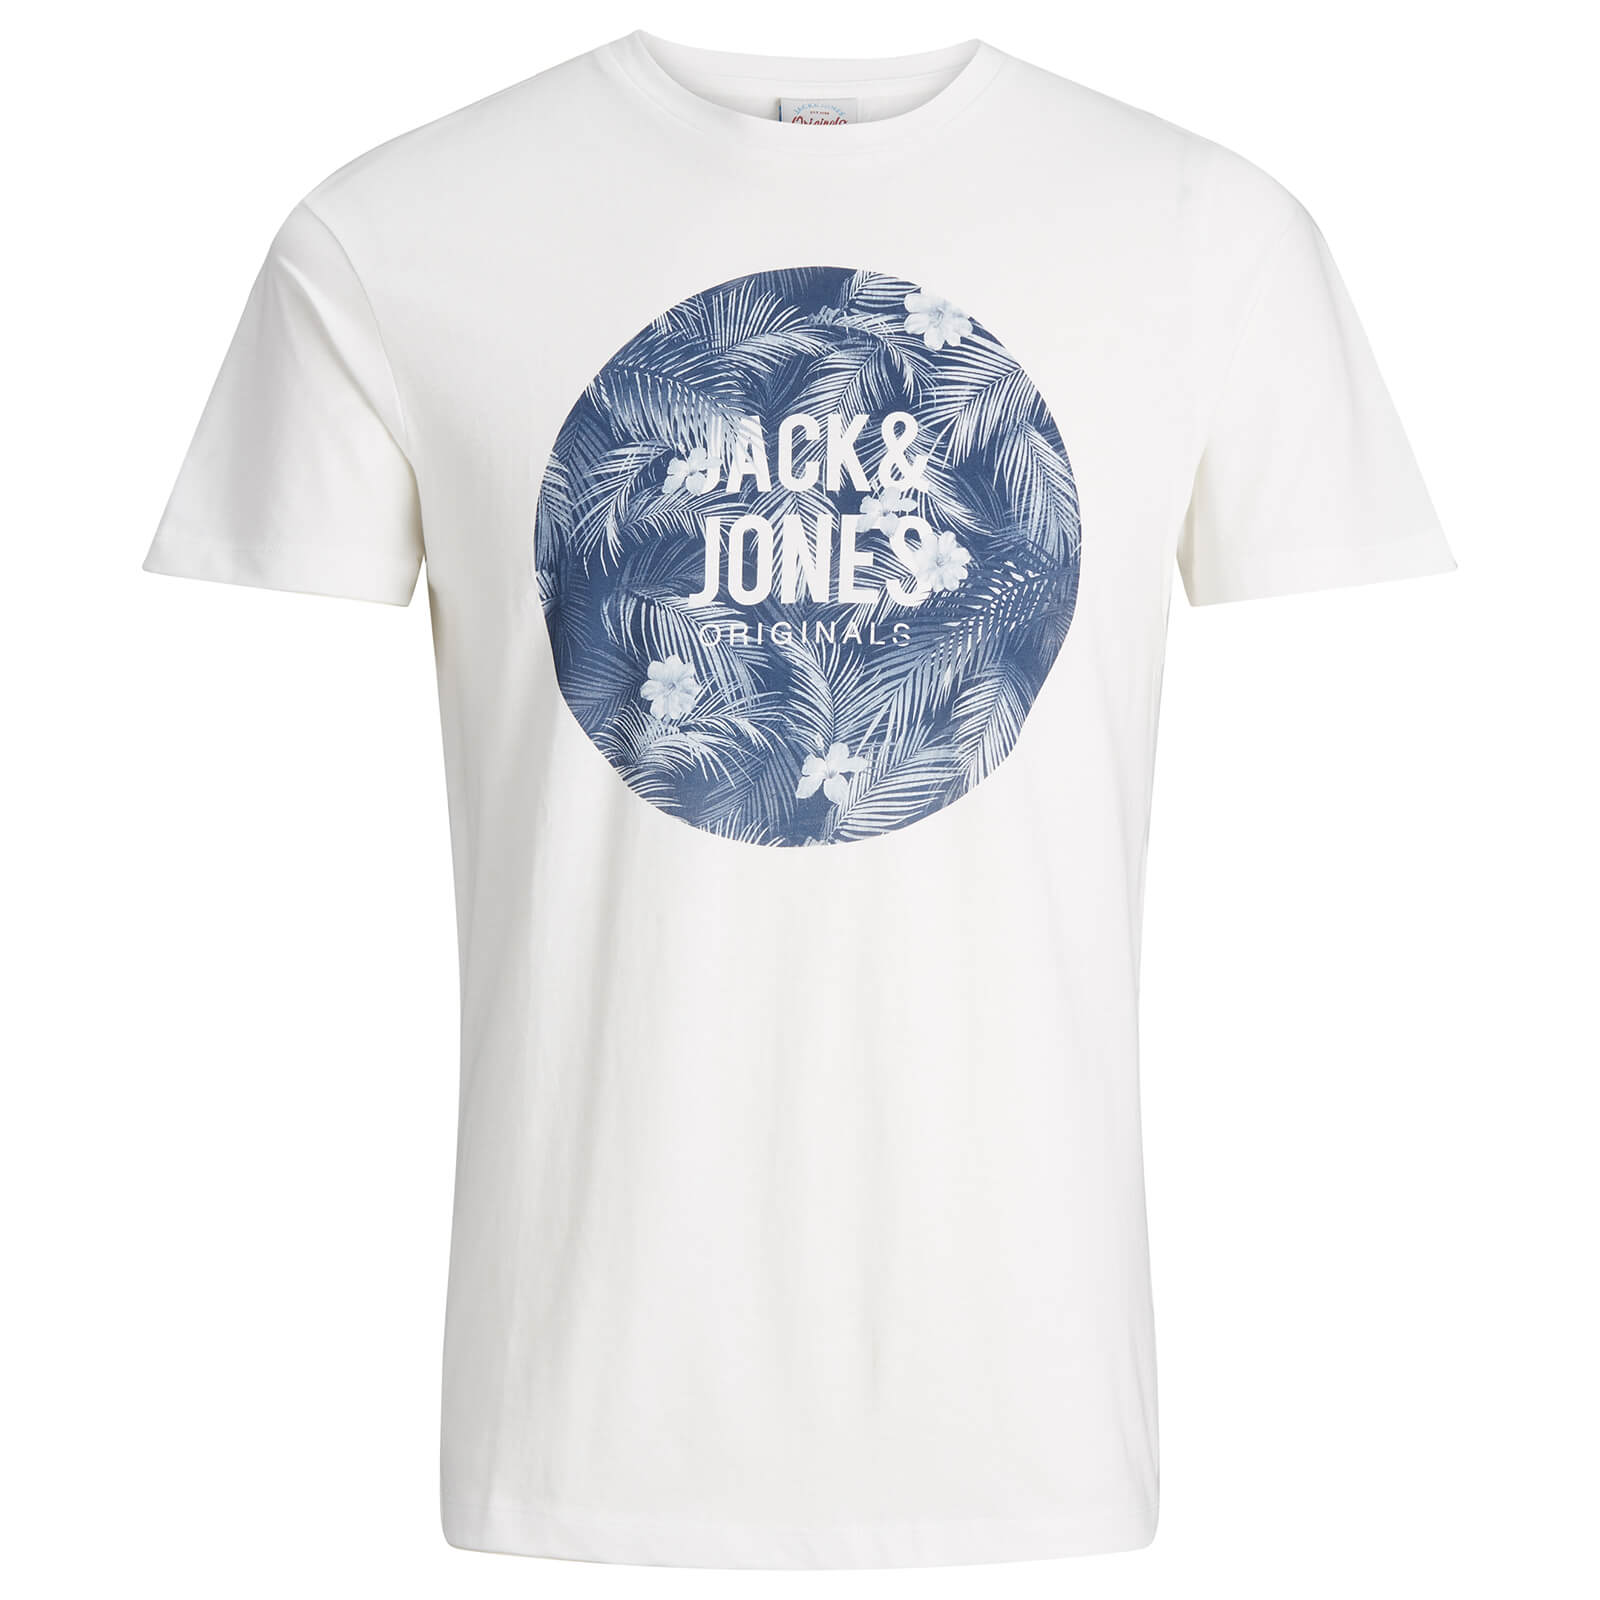 T-Shirt Homme Originals Newport Jack & Jones -Blanc